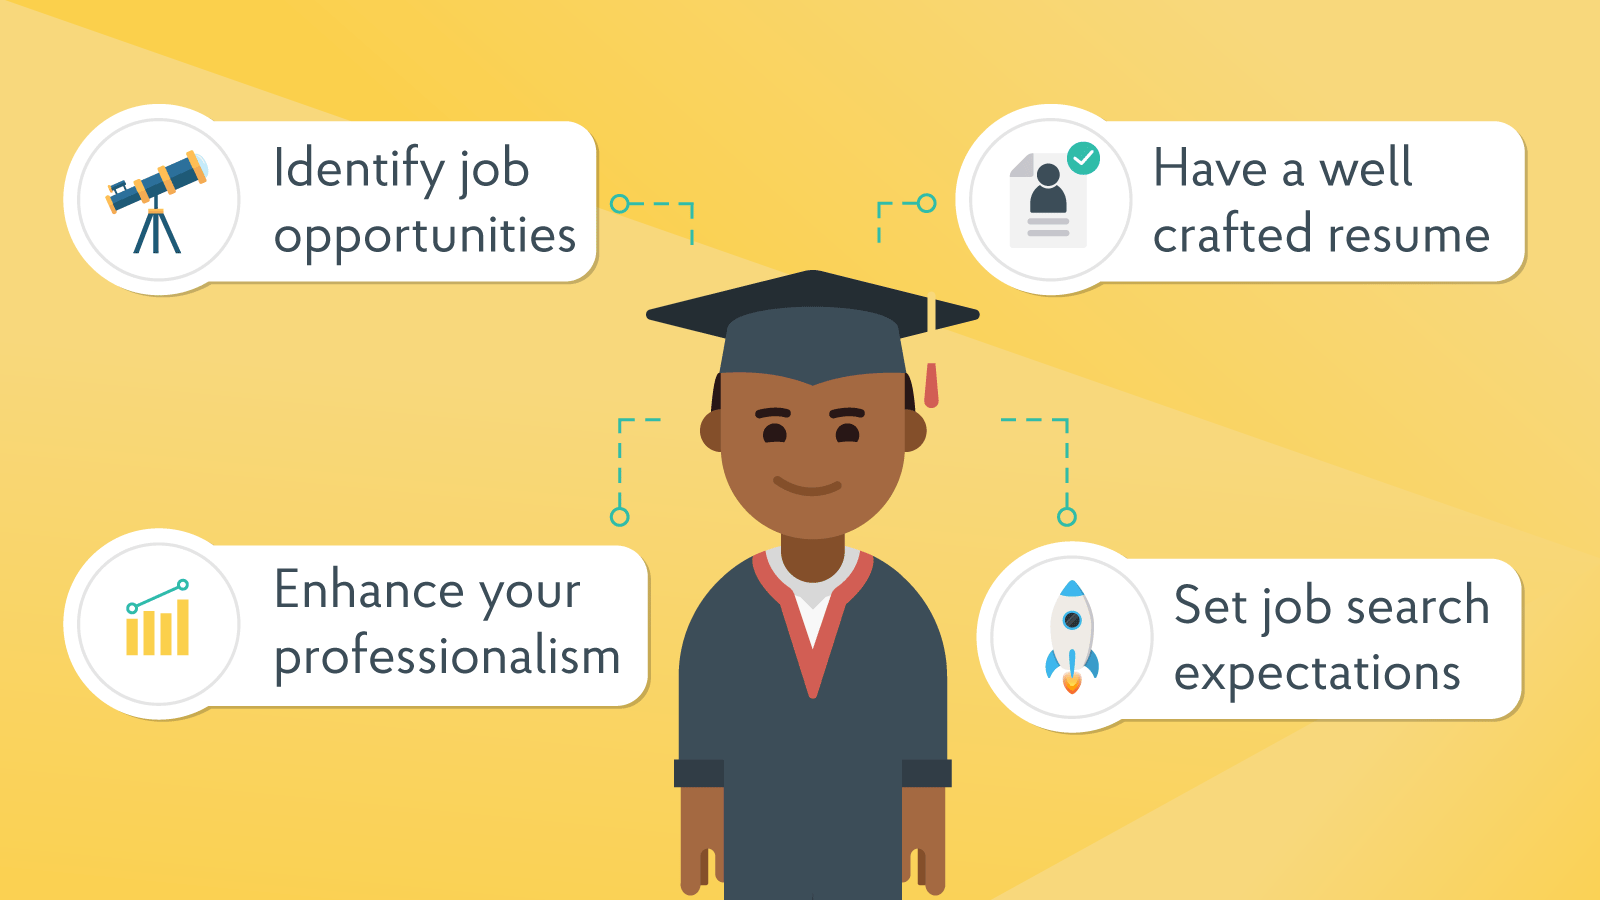 How To Find A Job As A Recent Graduate In 2020